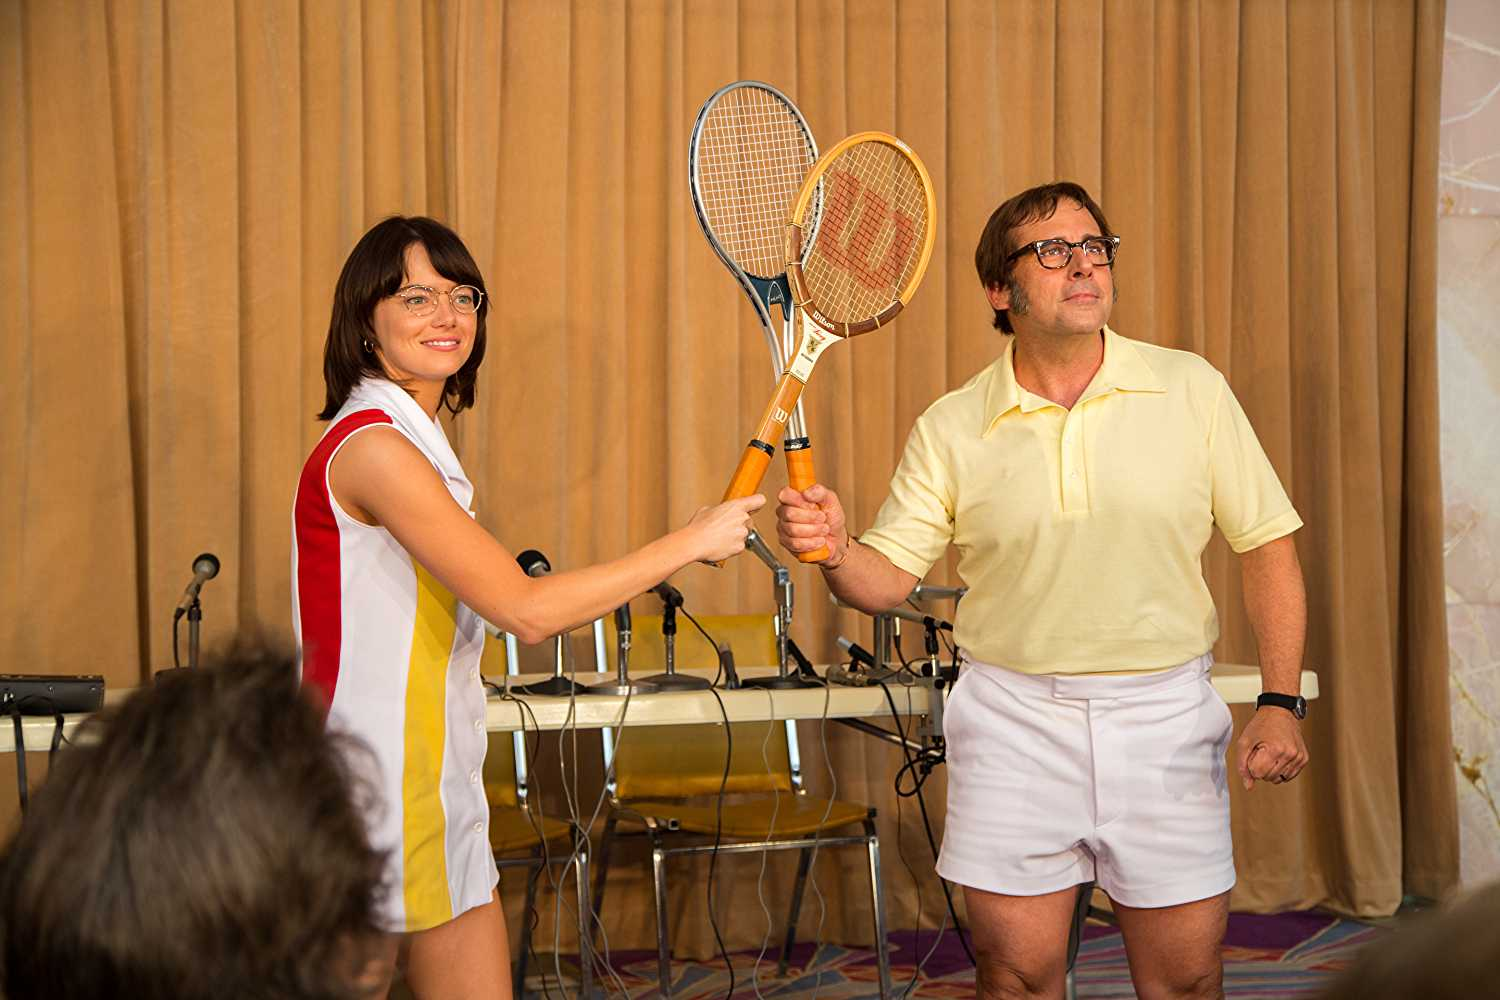 Battle of the Sexes Ratings and Reviews